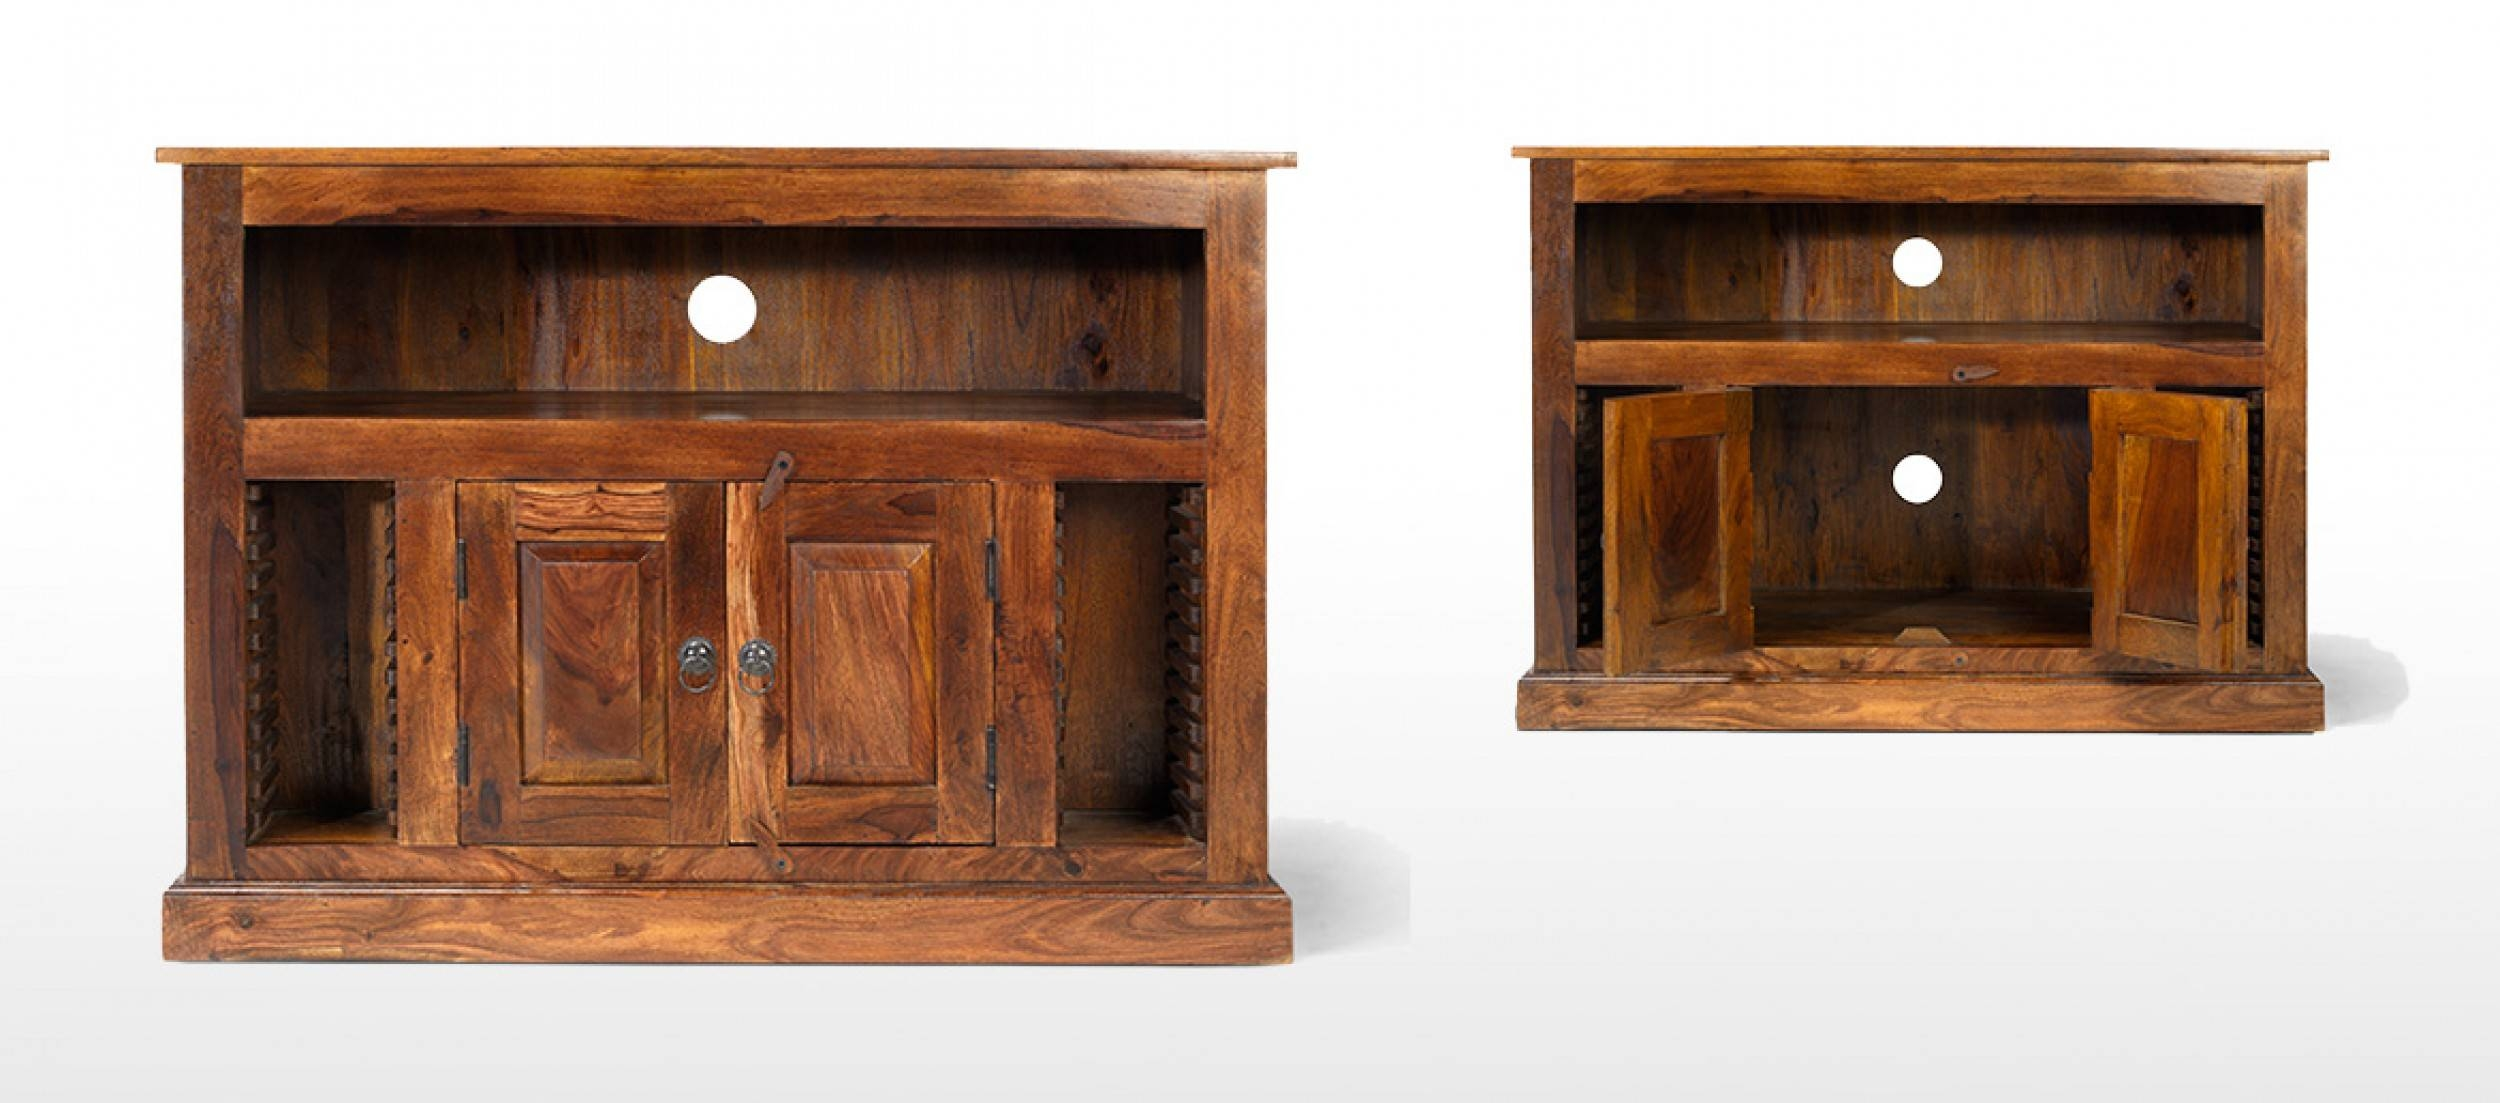 Jali Sheesham Chunky Tv Stand   Quercus Living pertaining to Jali Tv Cabinets (Image 9 of 15)